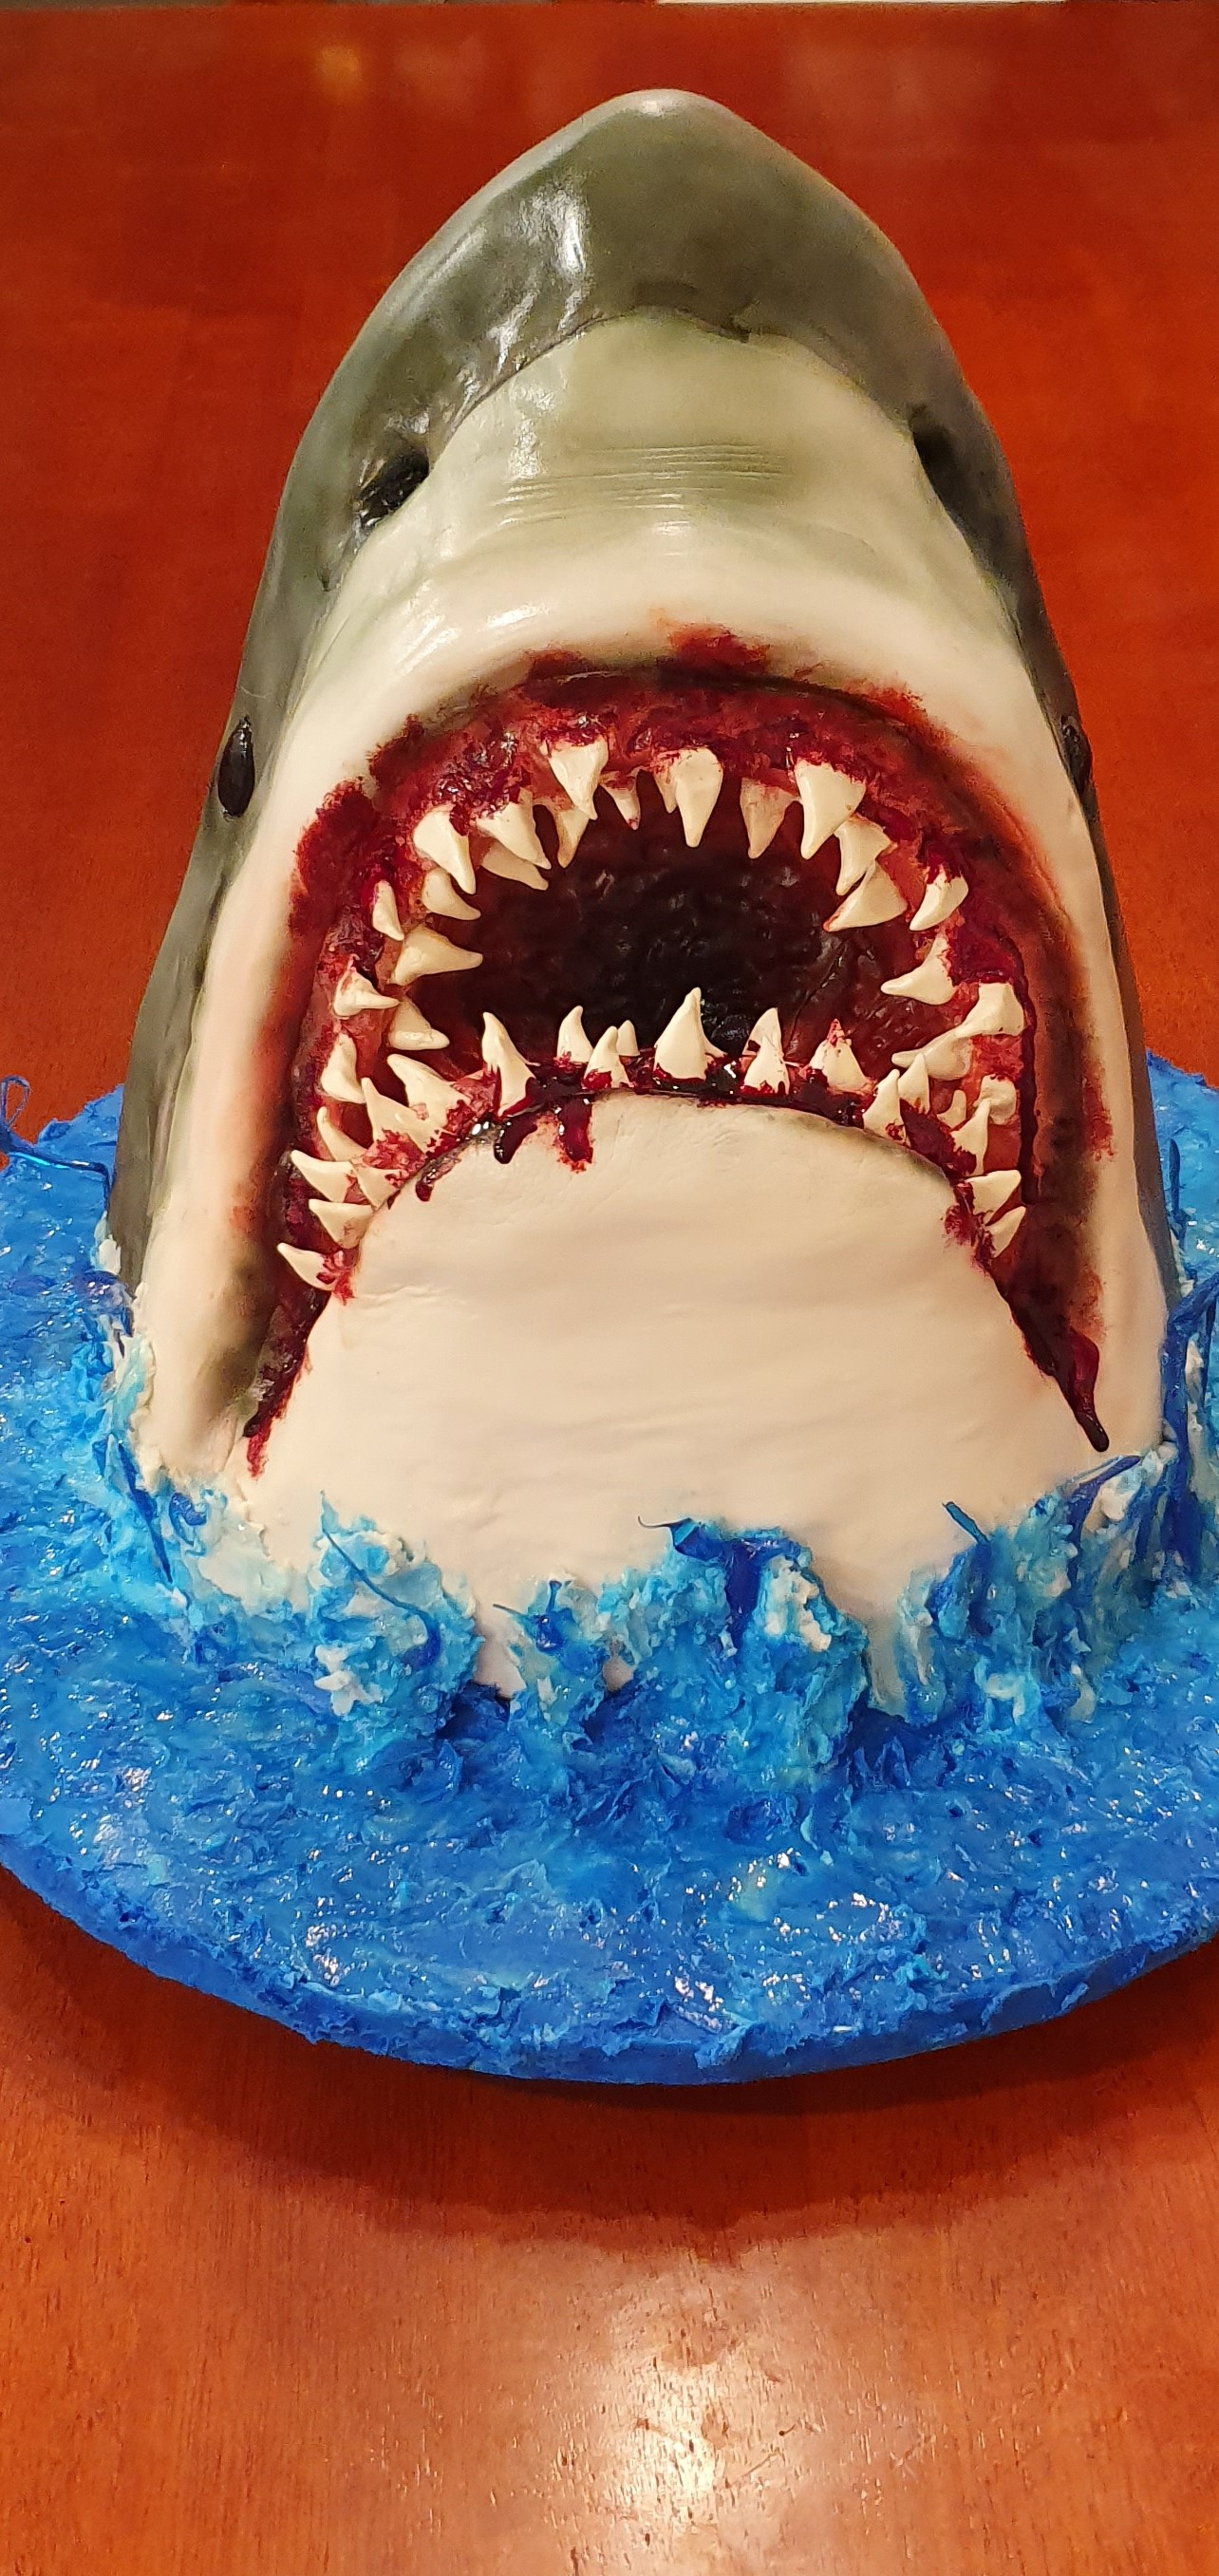 Jaws Shark cake from $400